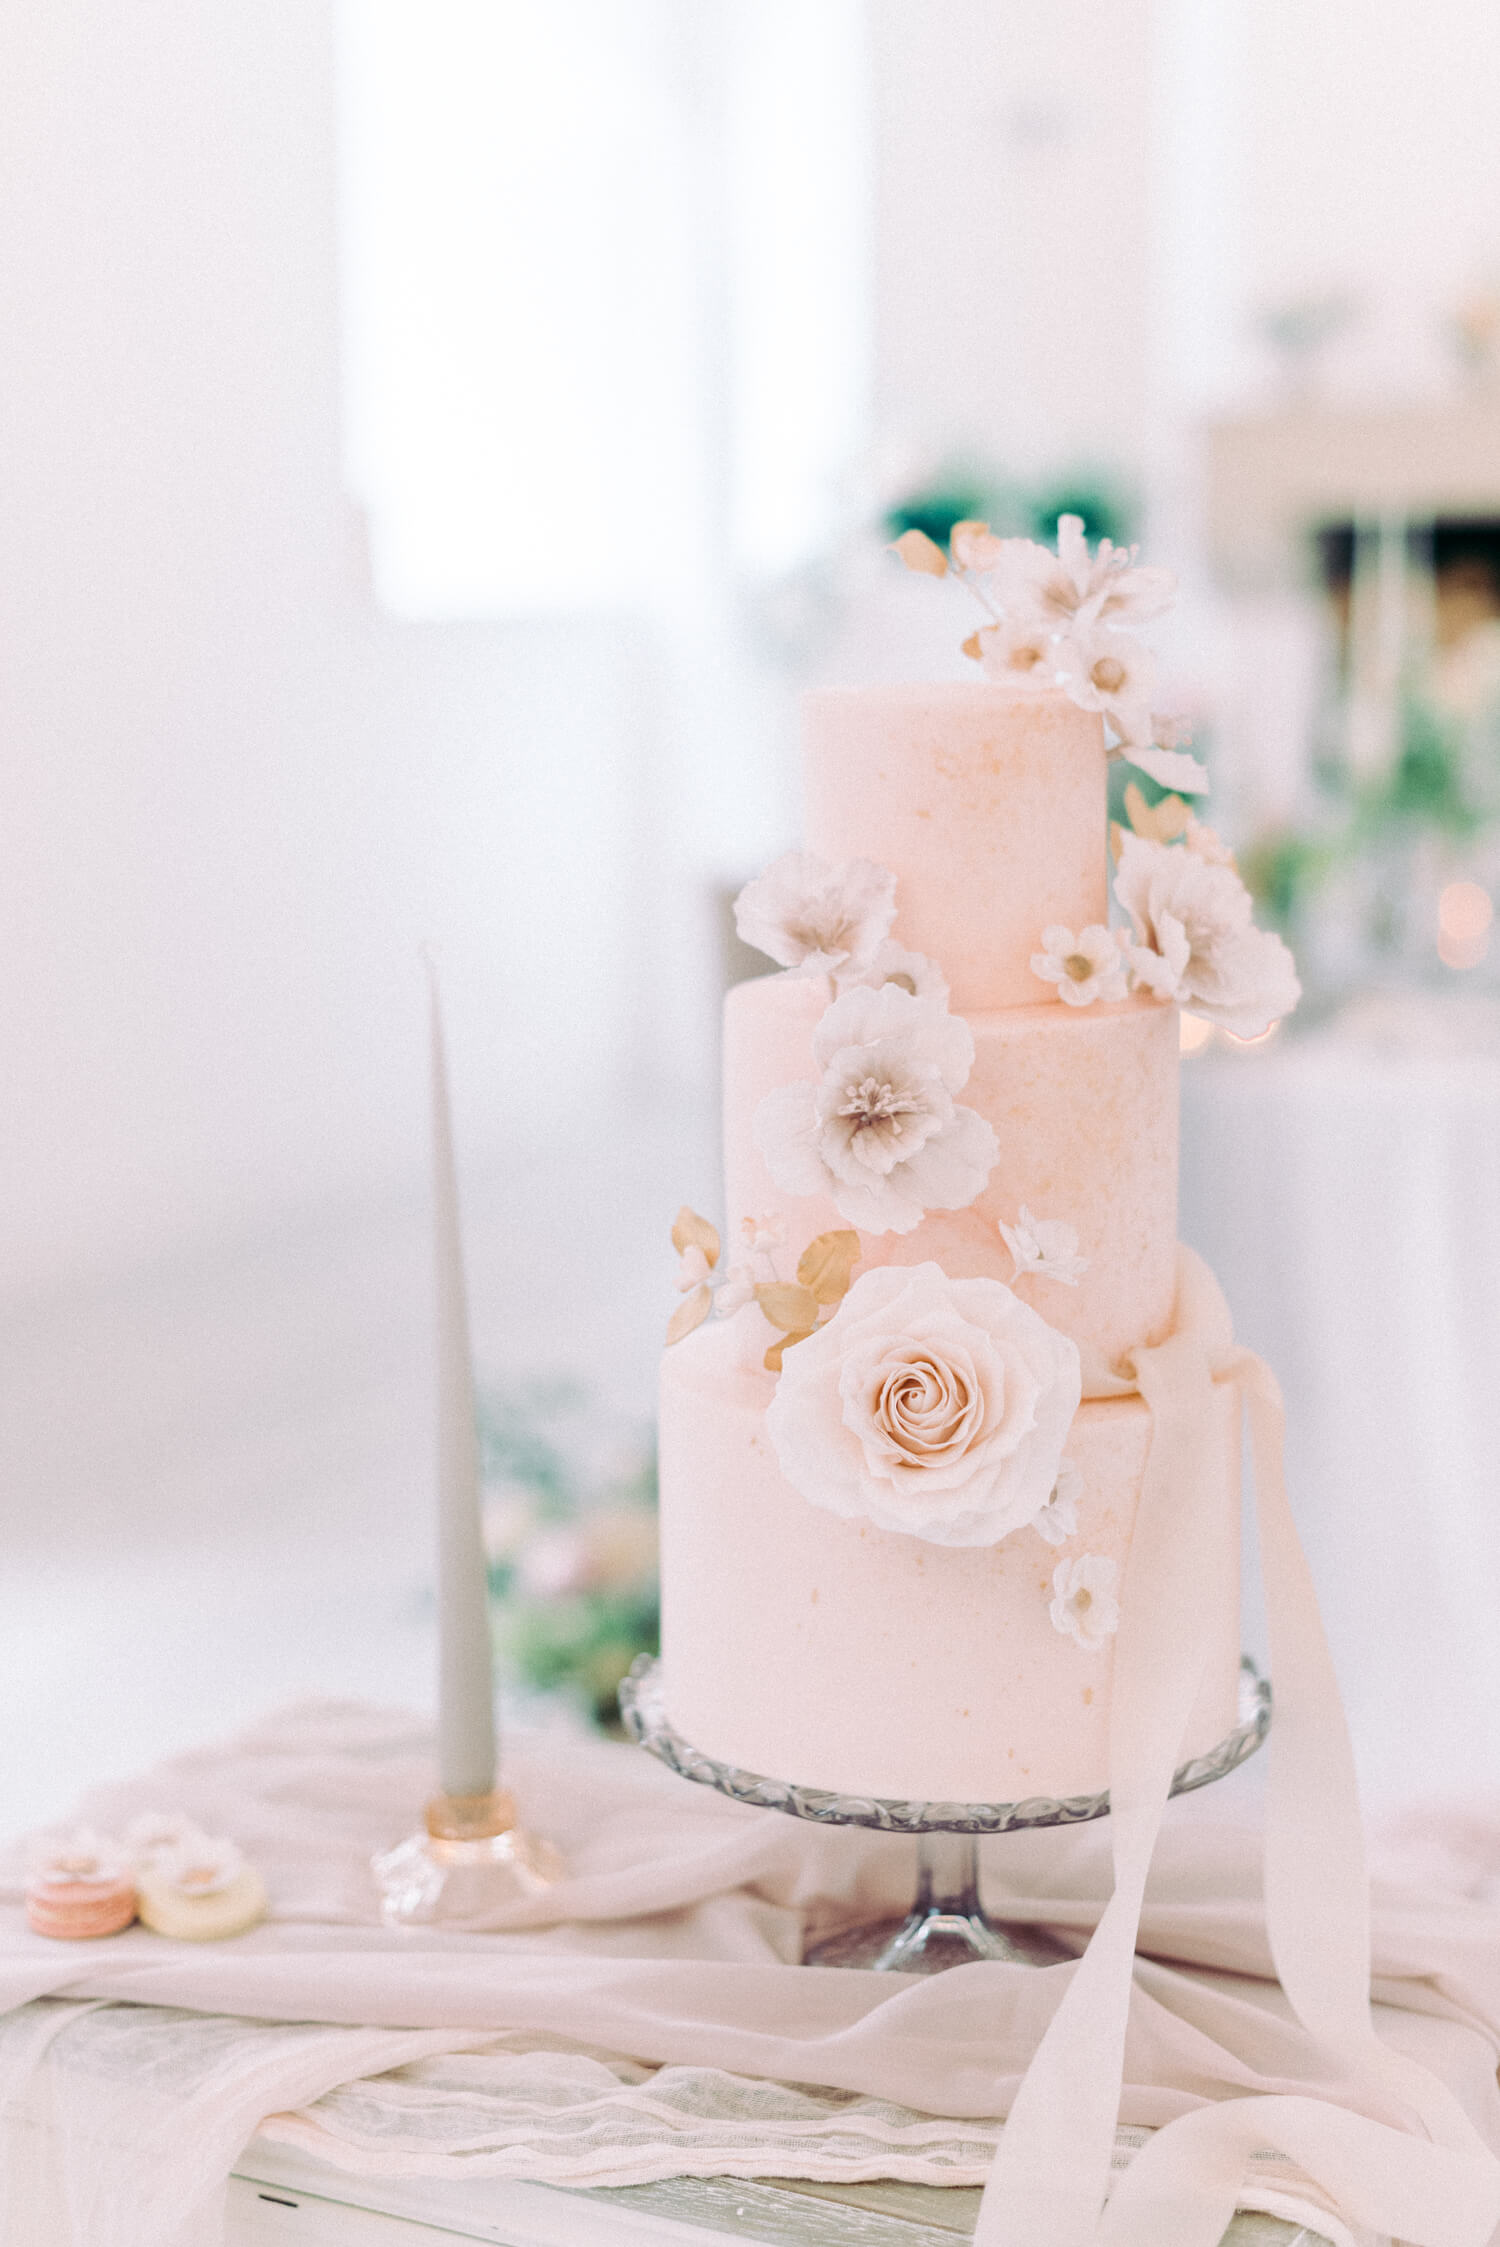 autumn wedding  - 3 tier dreamy peach themed fondant with white roses and sugar flowers on crystal stand. designed by sadie may cakes, photo by cristina ilao photography, venue: brinkburn northumberland priory